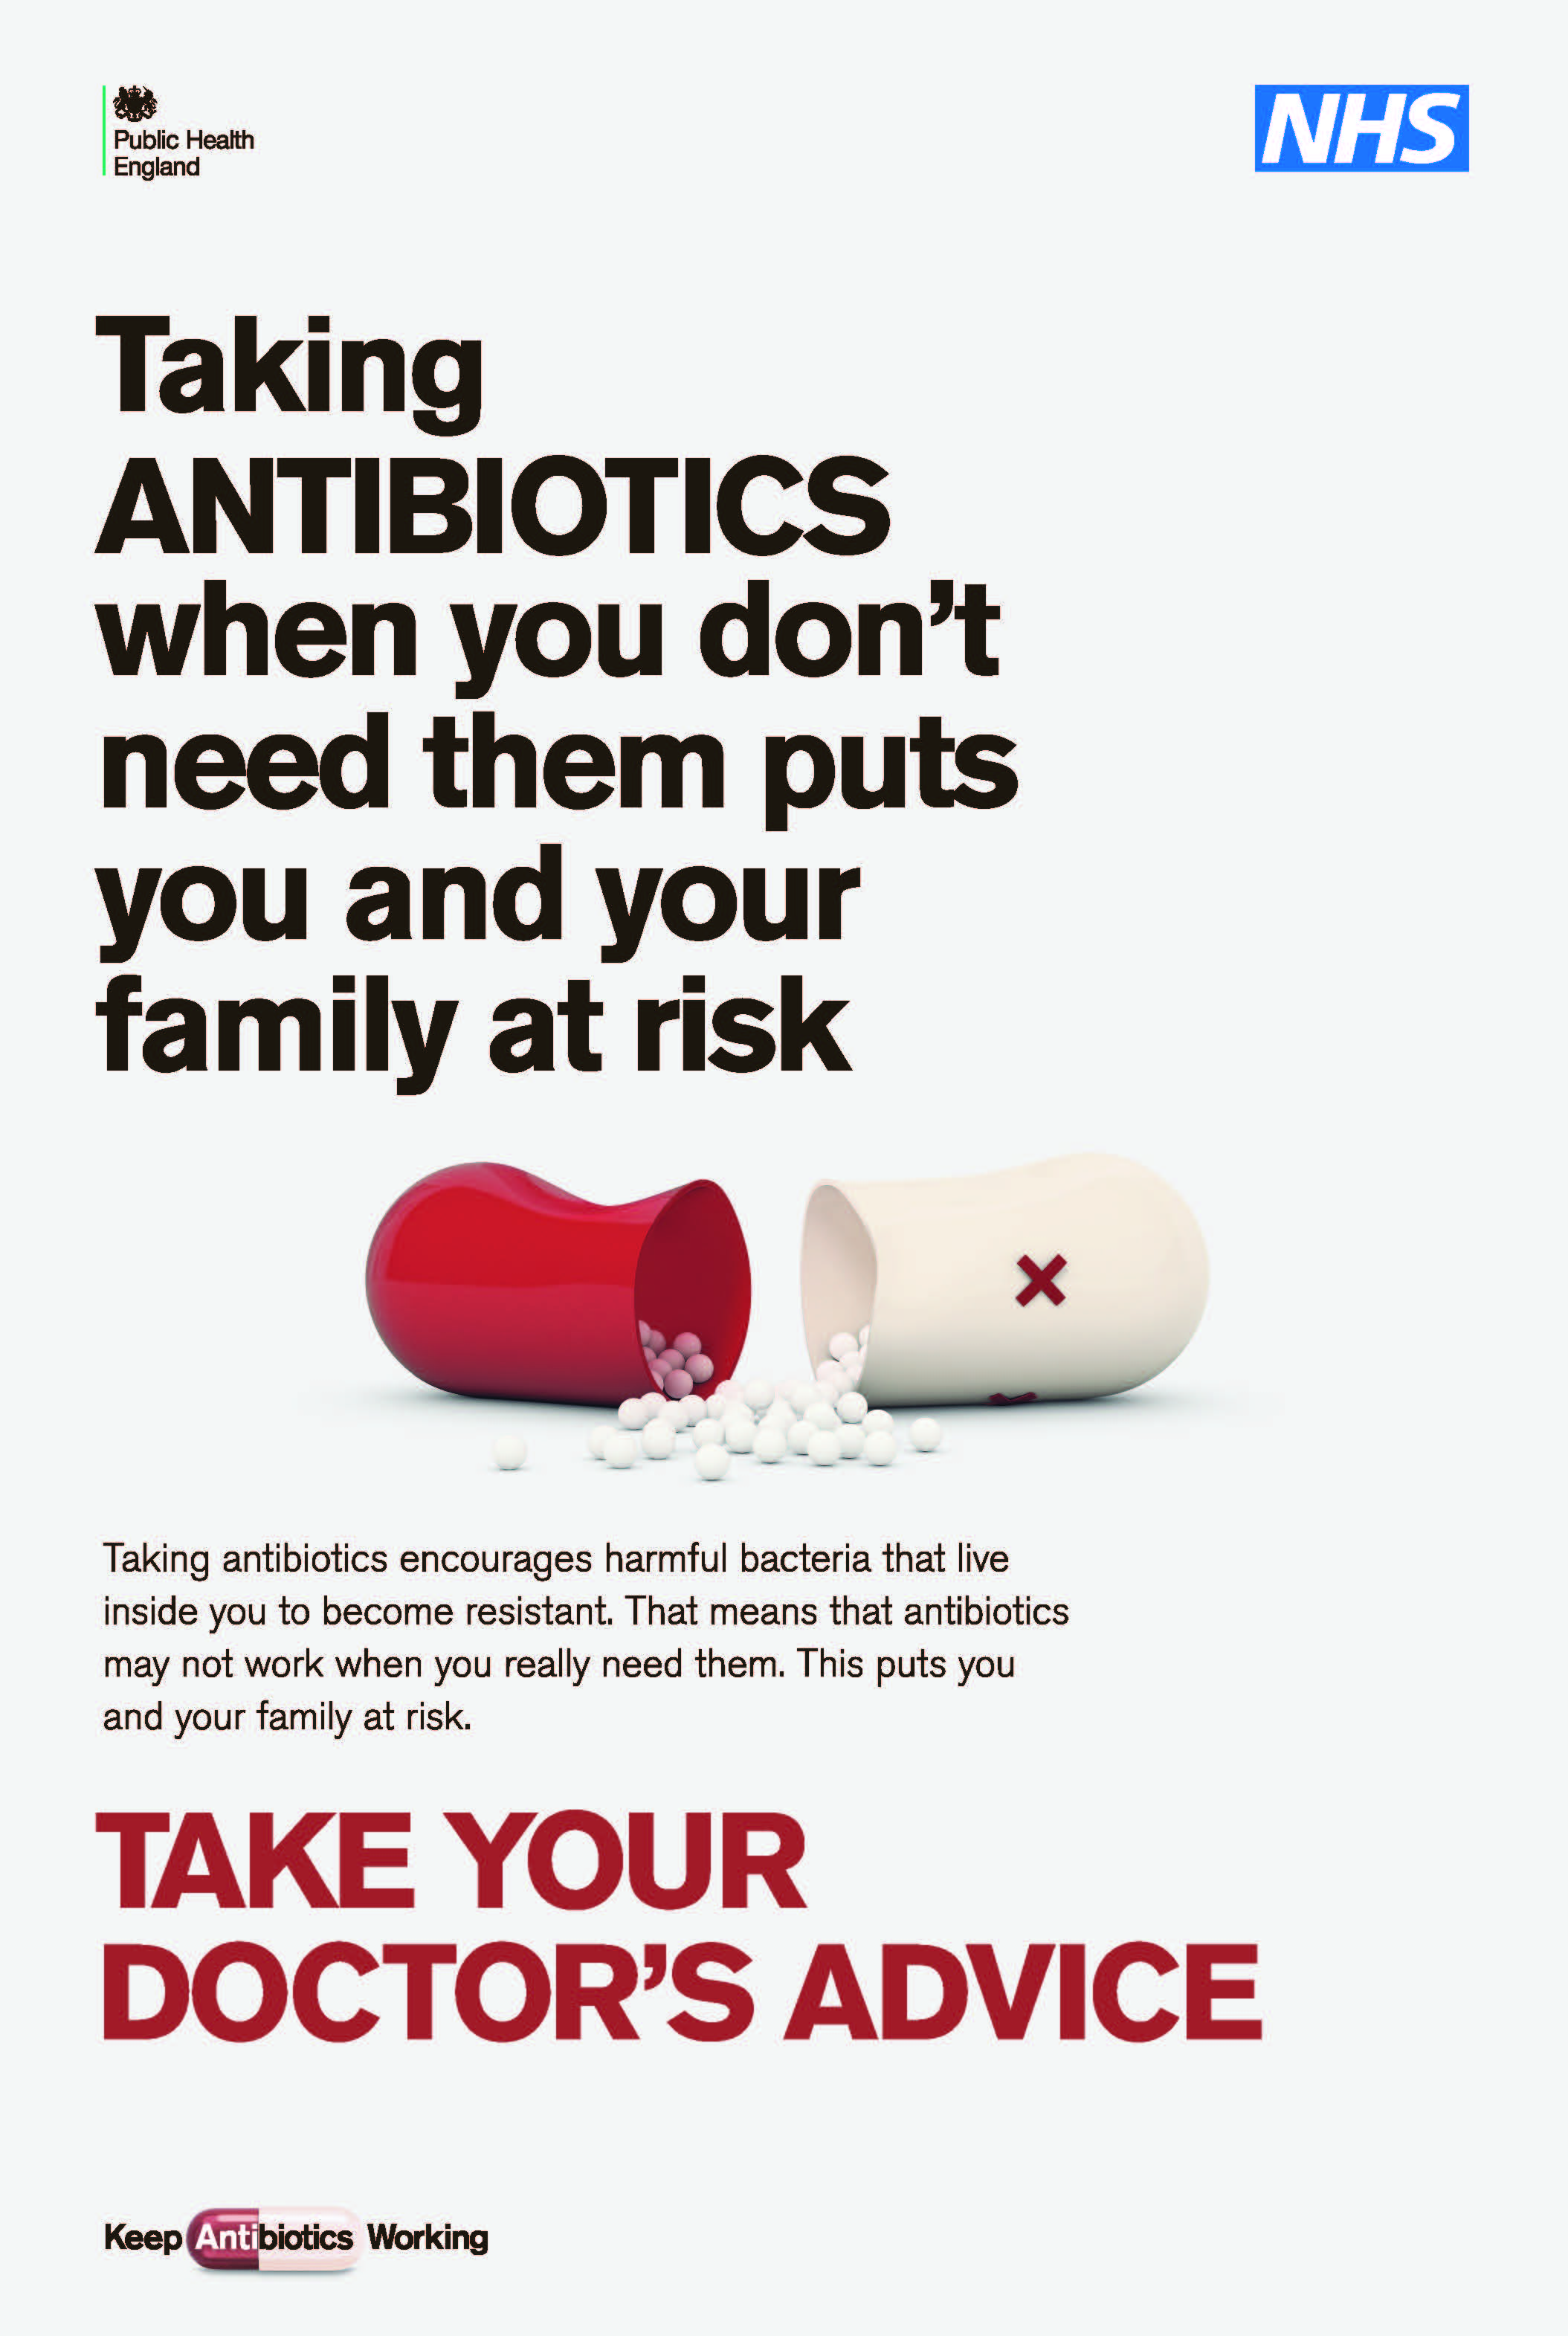 Cumbrian clinicians appeal for support to help preserve our antibiotics